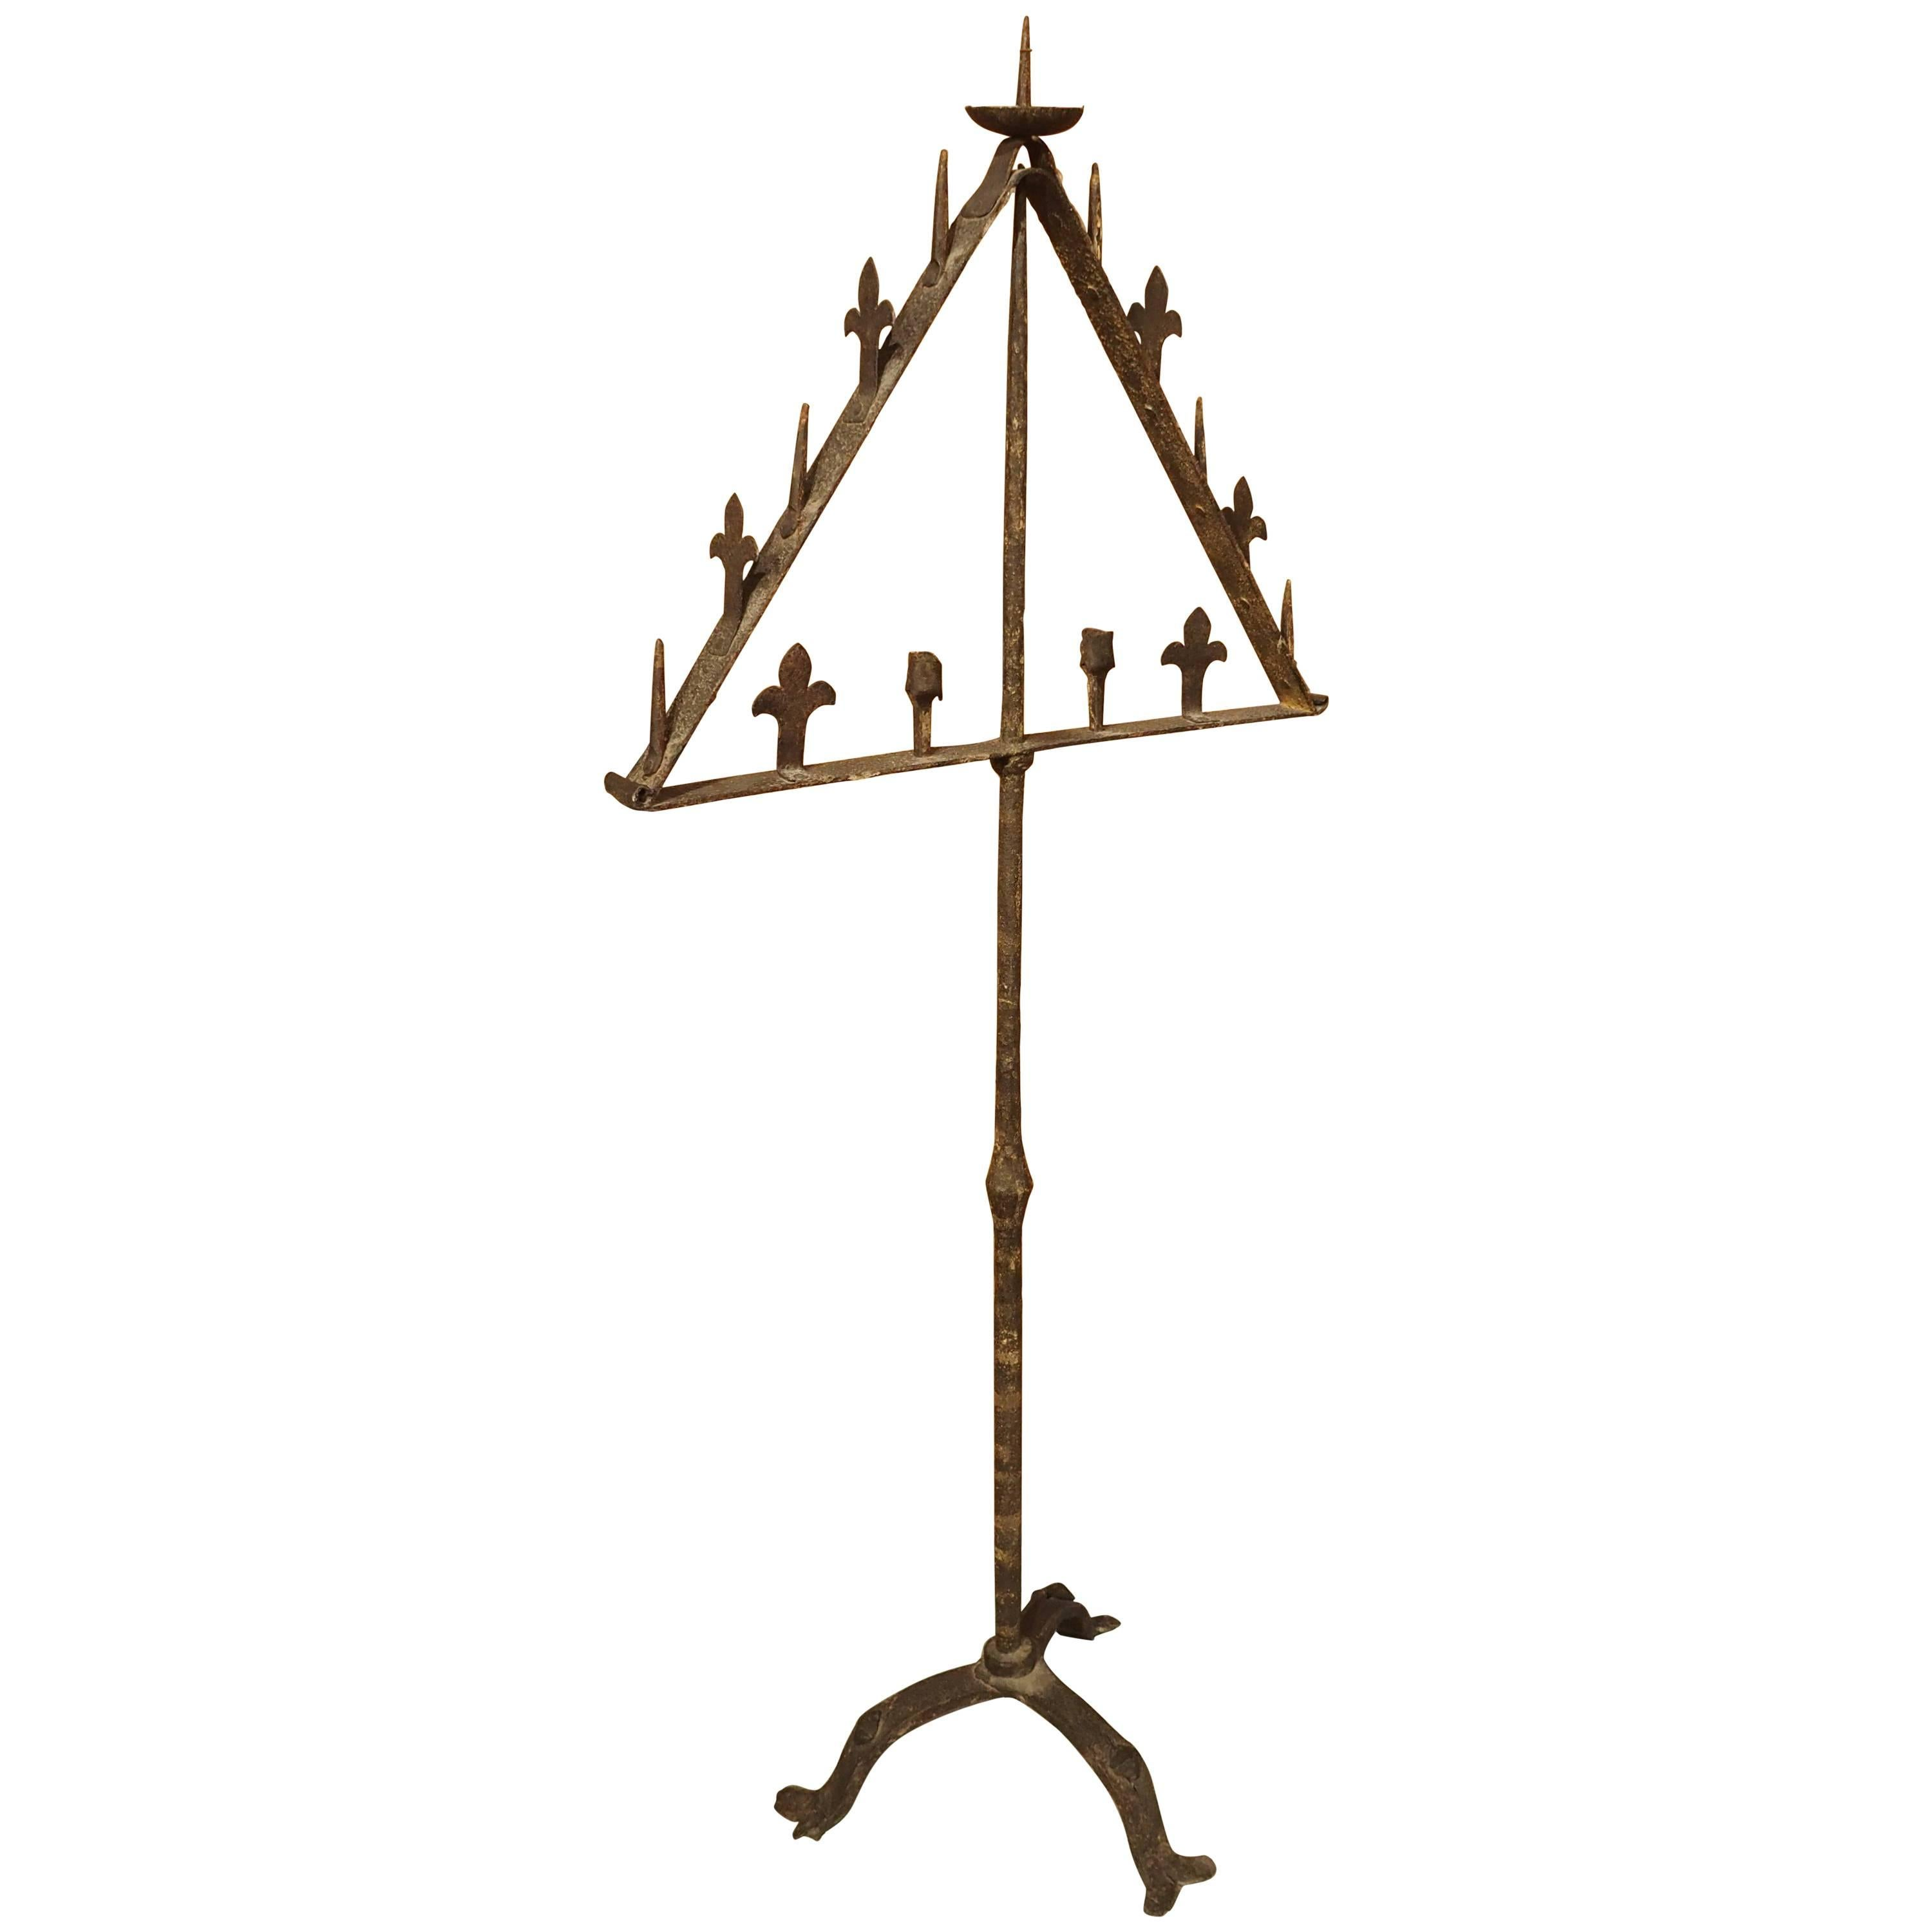 Antique Wrought Iron Torchere from Italy, 18th Century